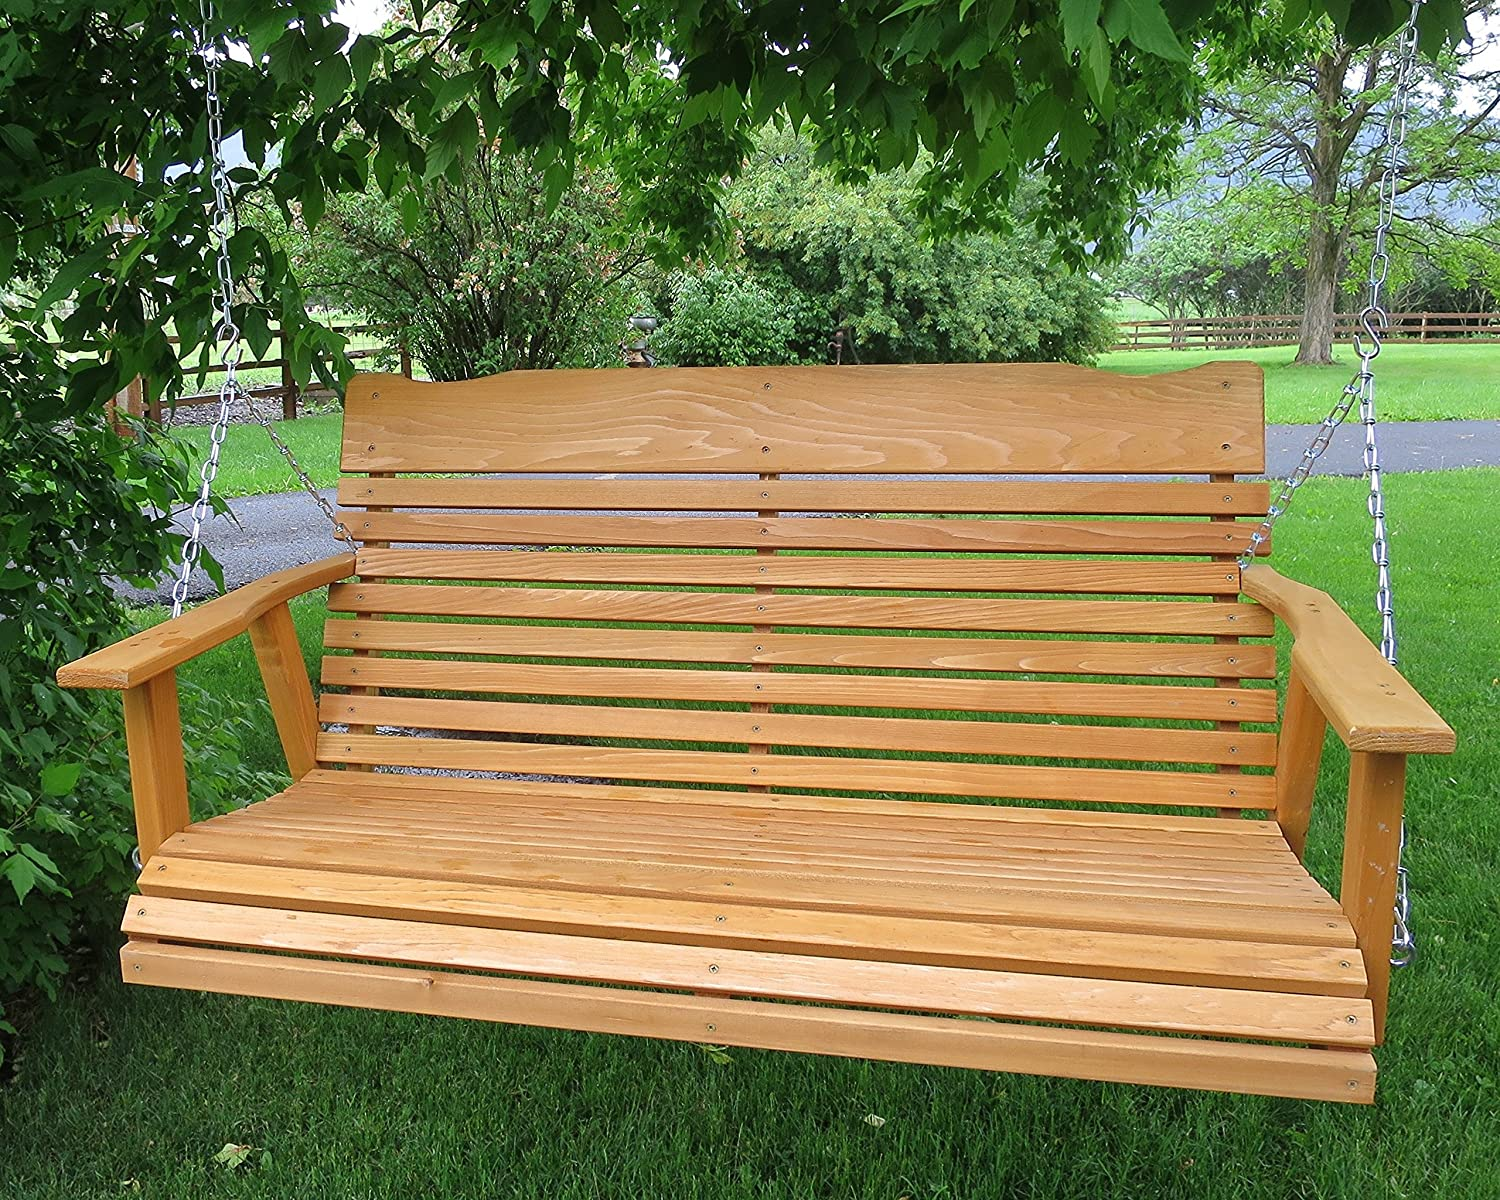 Amazon.com : 4u0027 Cedar Porch Swing W/stained Finish, Amish Crafted    Includes Chain U0026 Springs : Garden U0026 Outdoor